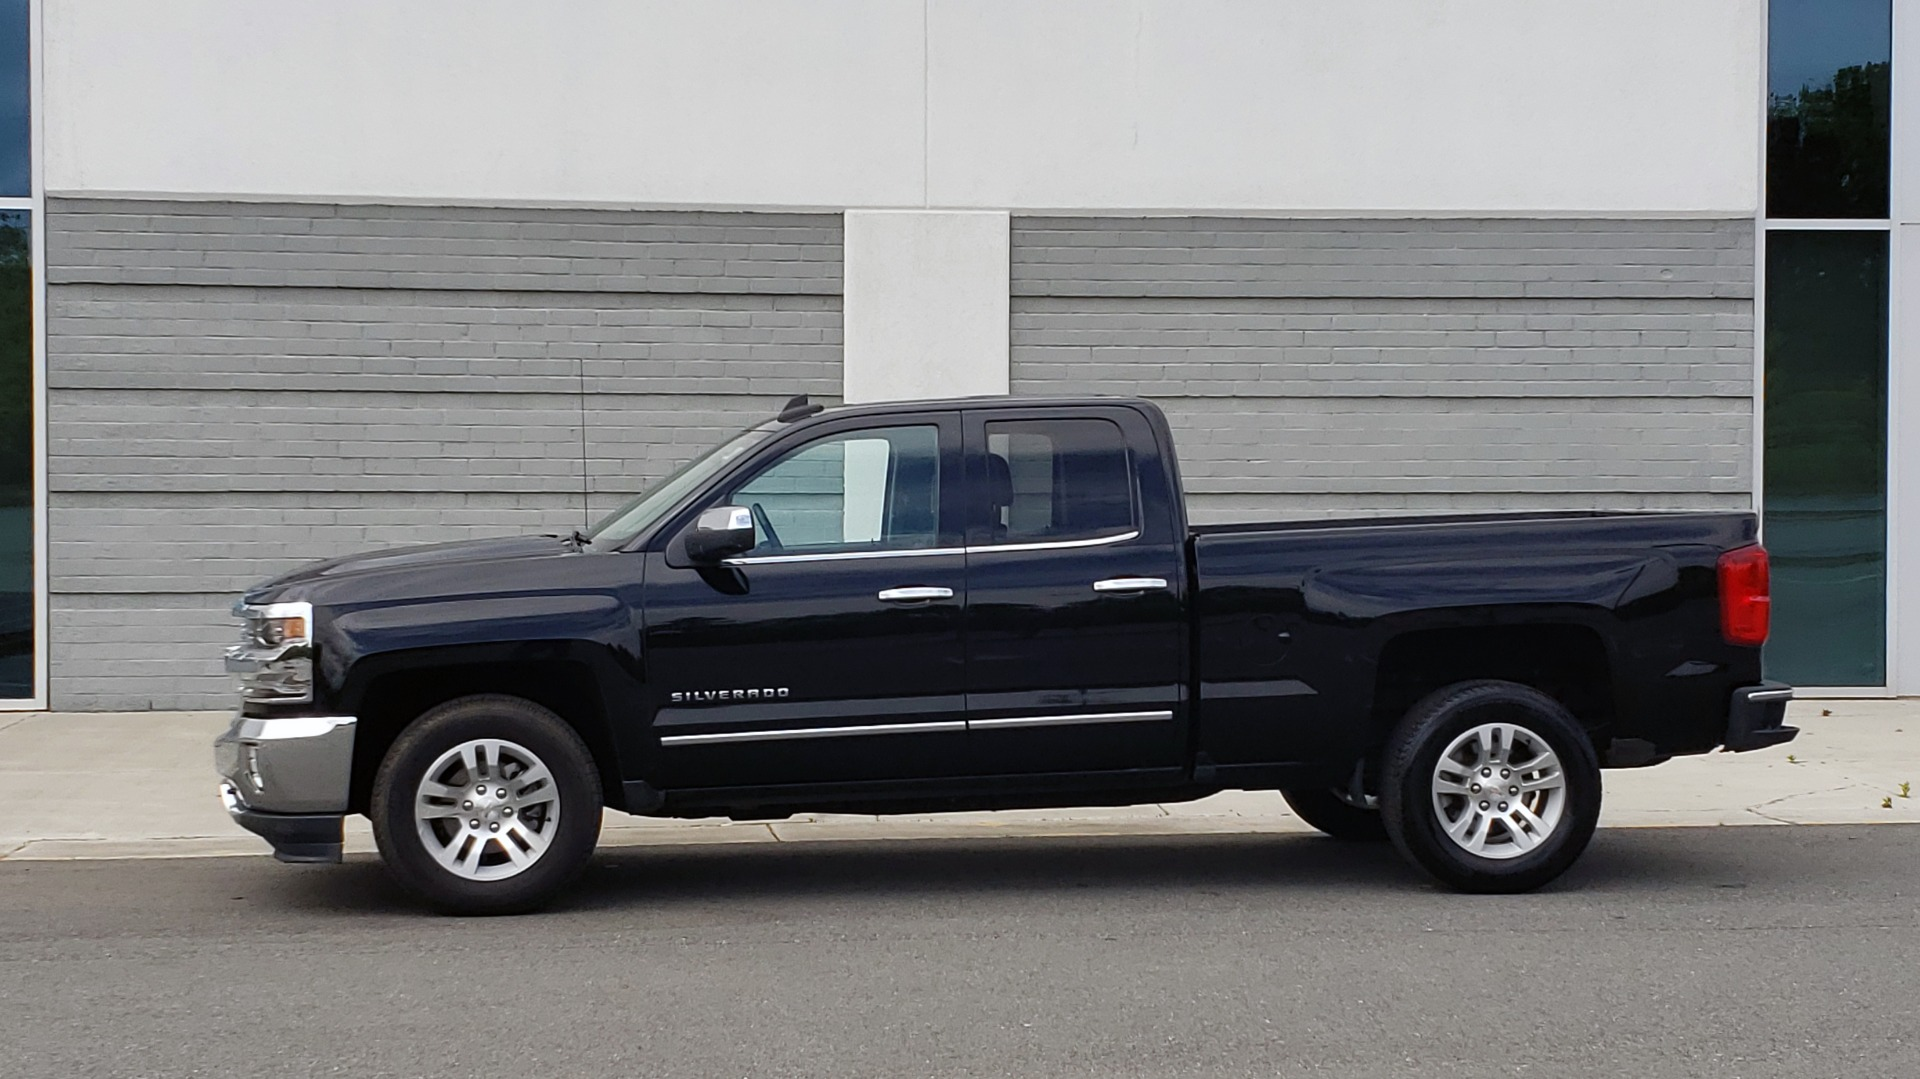 Used 2018 Chevrolet SILVERADO 1500 LTZ 1LZ / 5.3L V8 / 2WD / 6-SPD AUTO / DOUBLECAB / REARVIEW for sale Sold at Formula Imports in Charlotte NC 28227 4